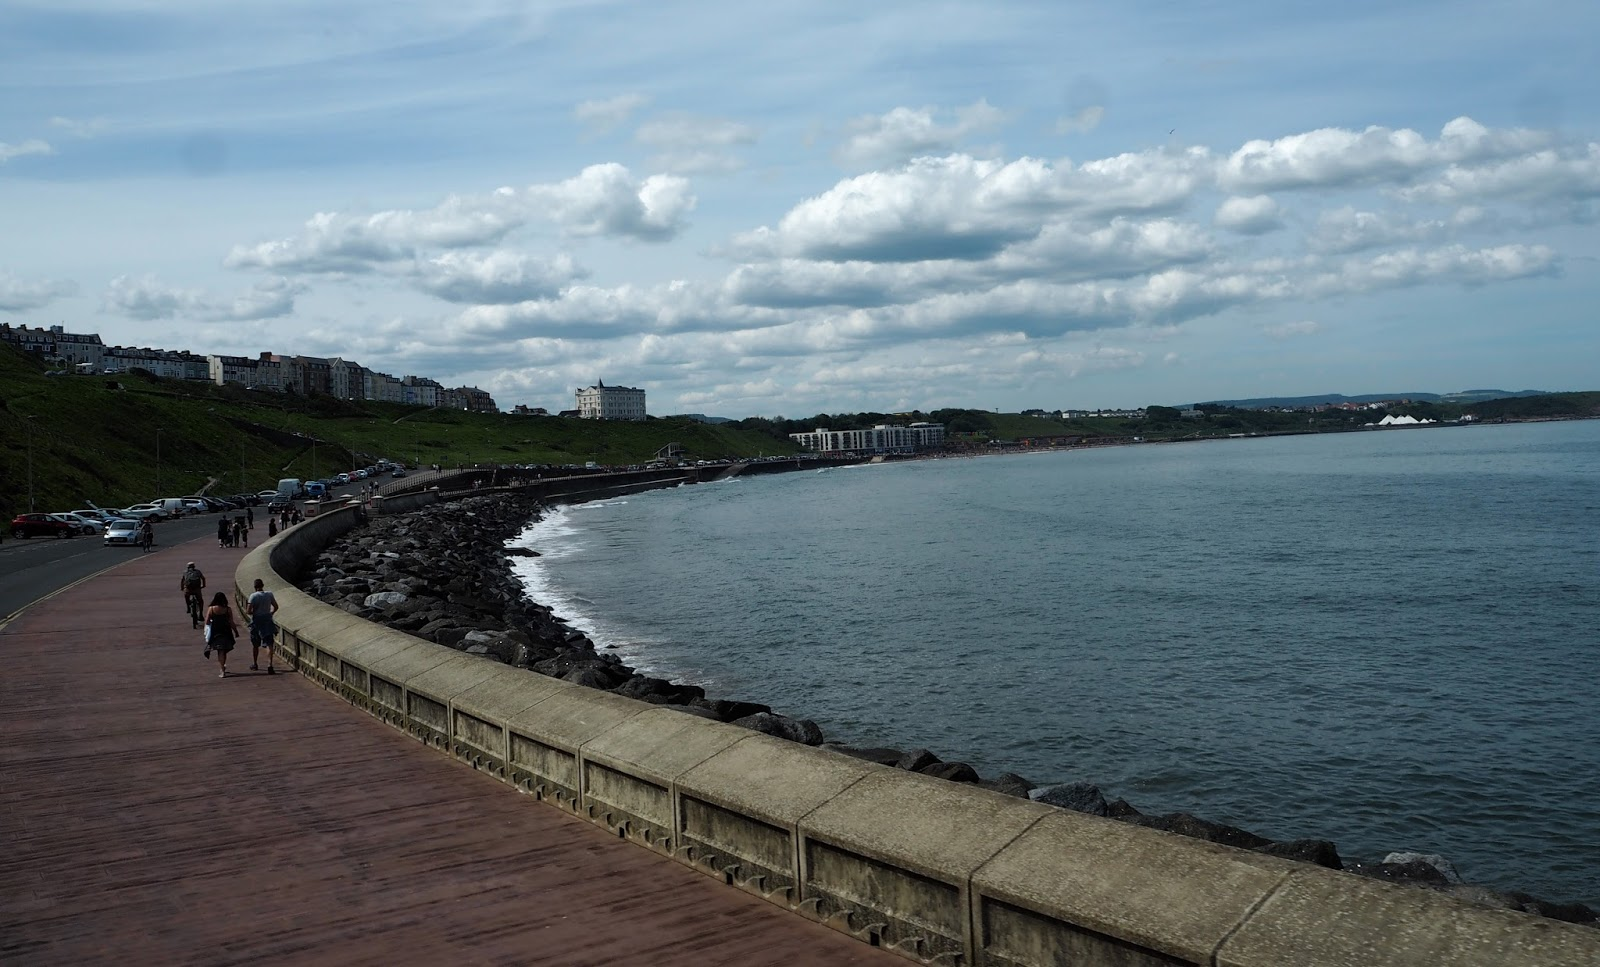 Esplanade coast road at North Bay, Scarborough